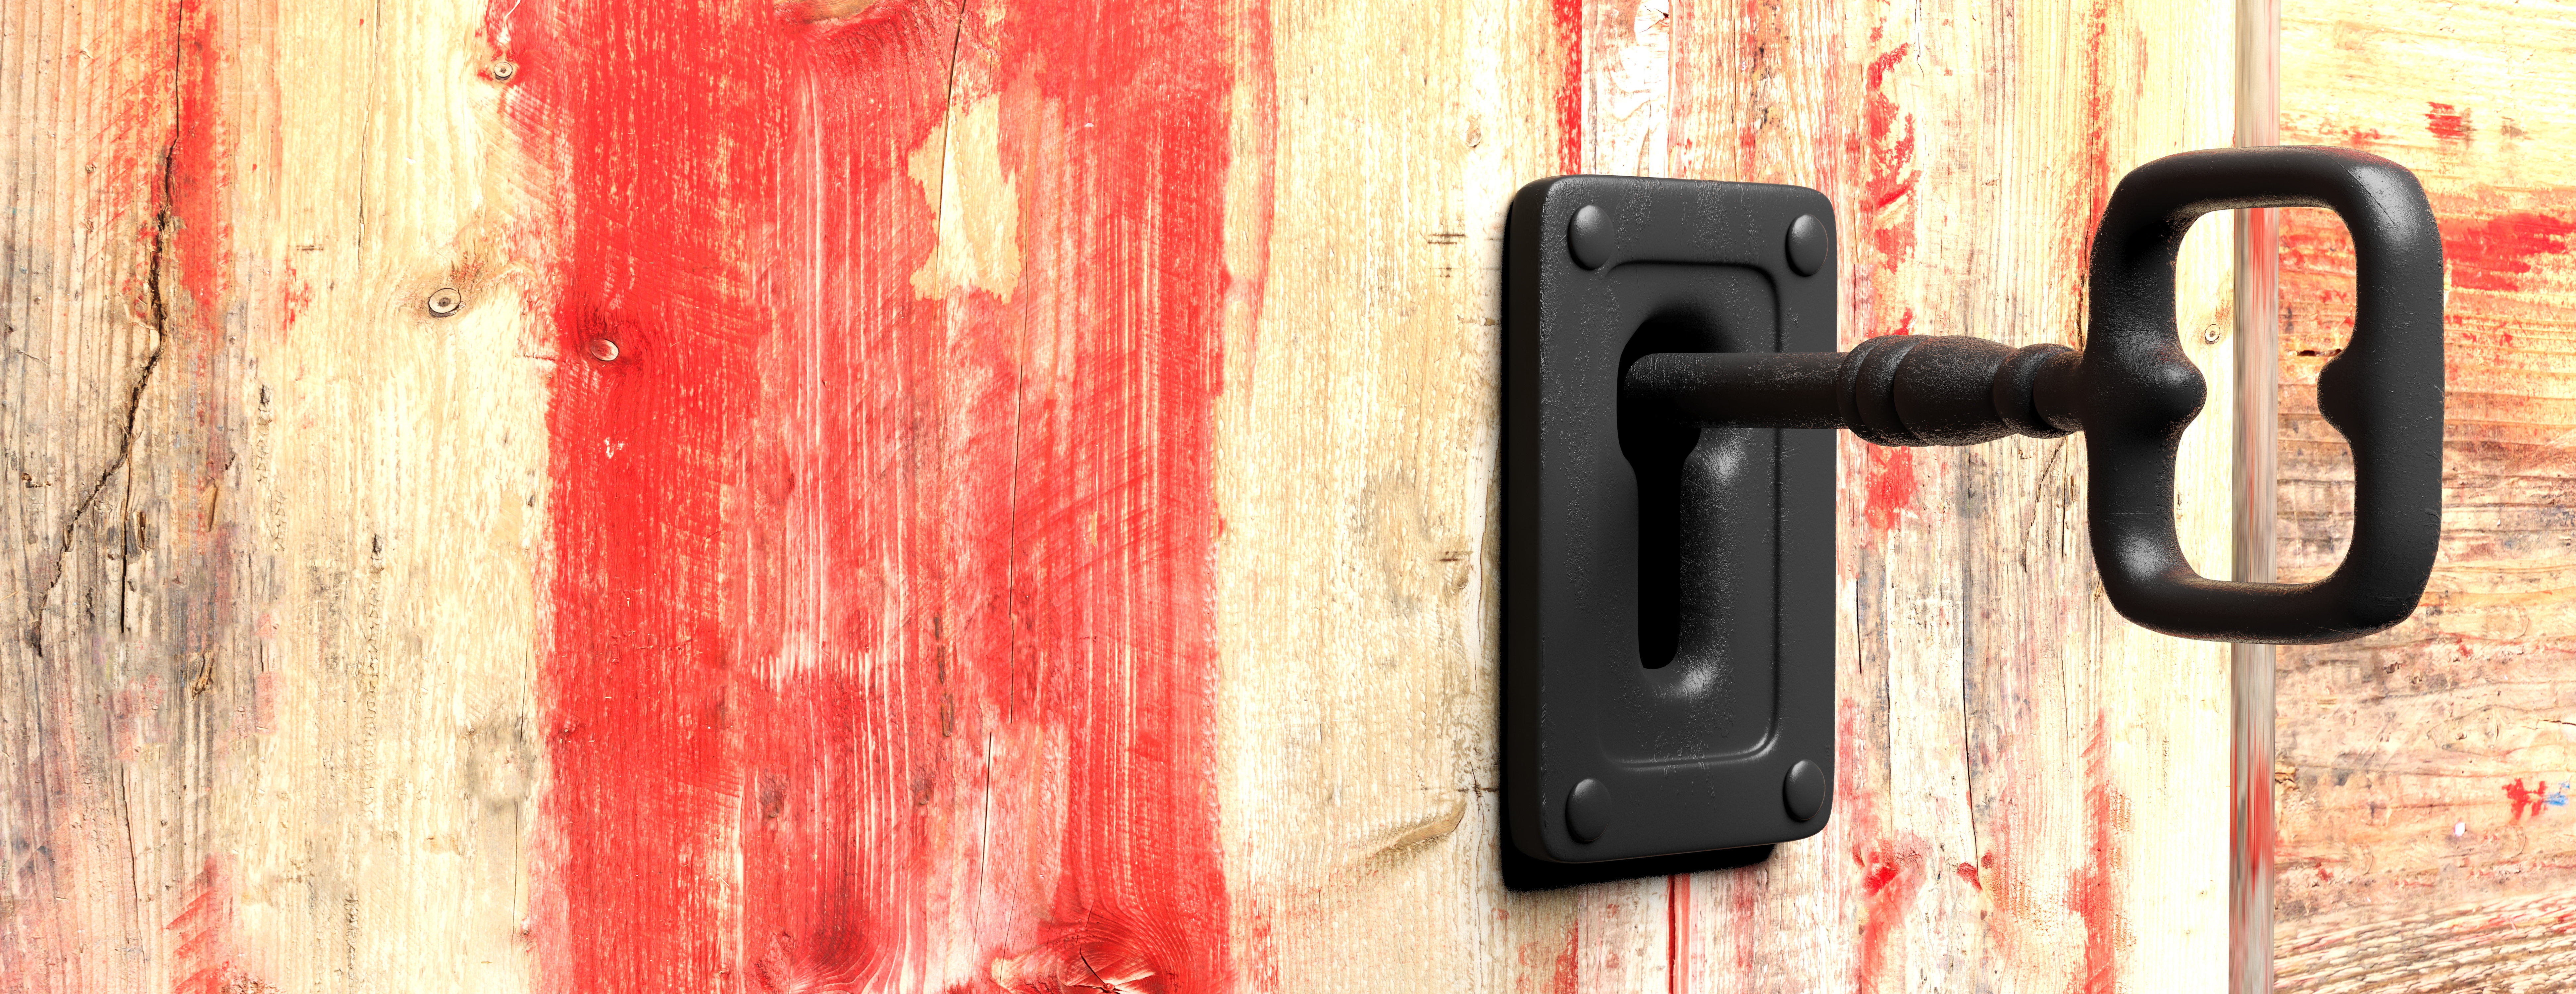 key-in-a-keyhole-red-wooden-background-3d-illustra-PUL2ENL